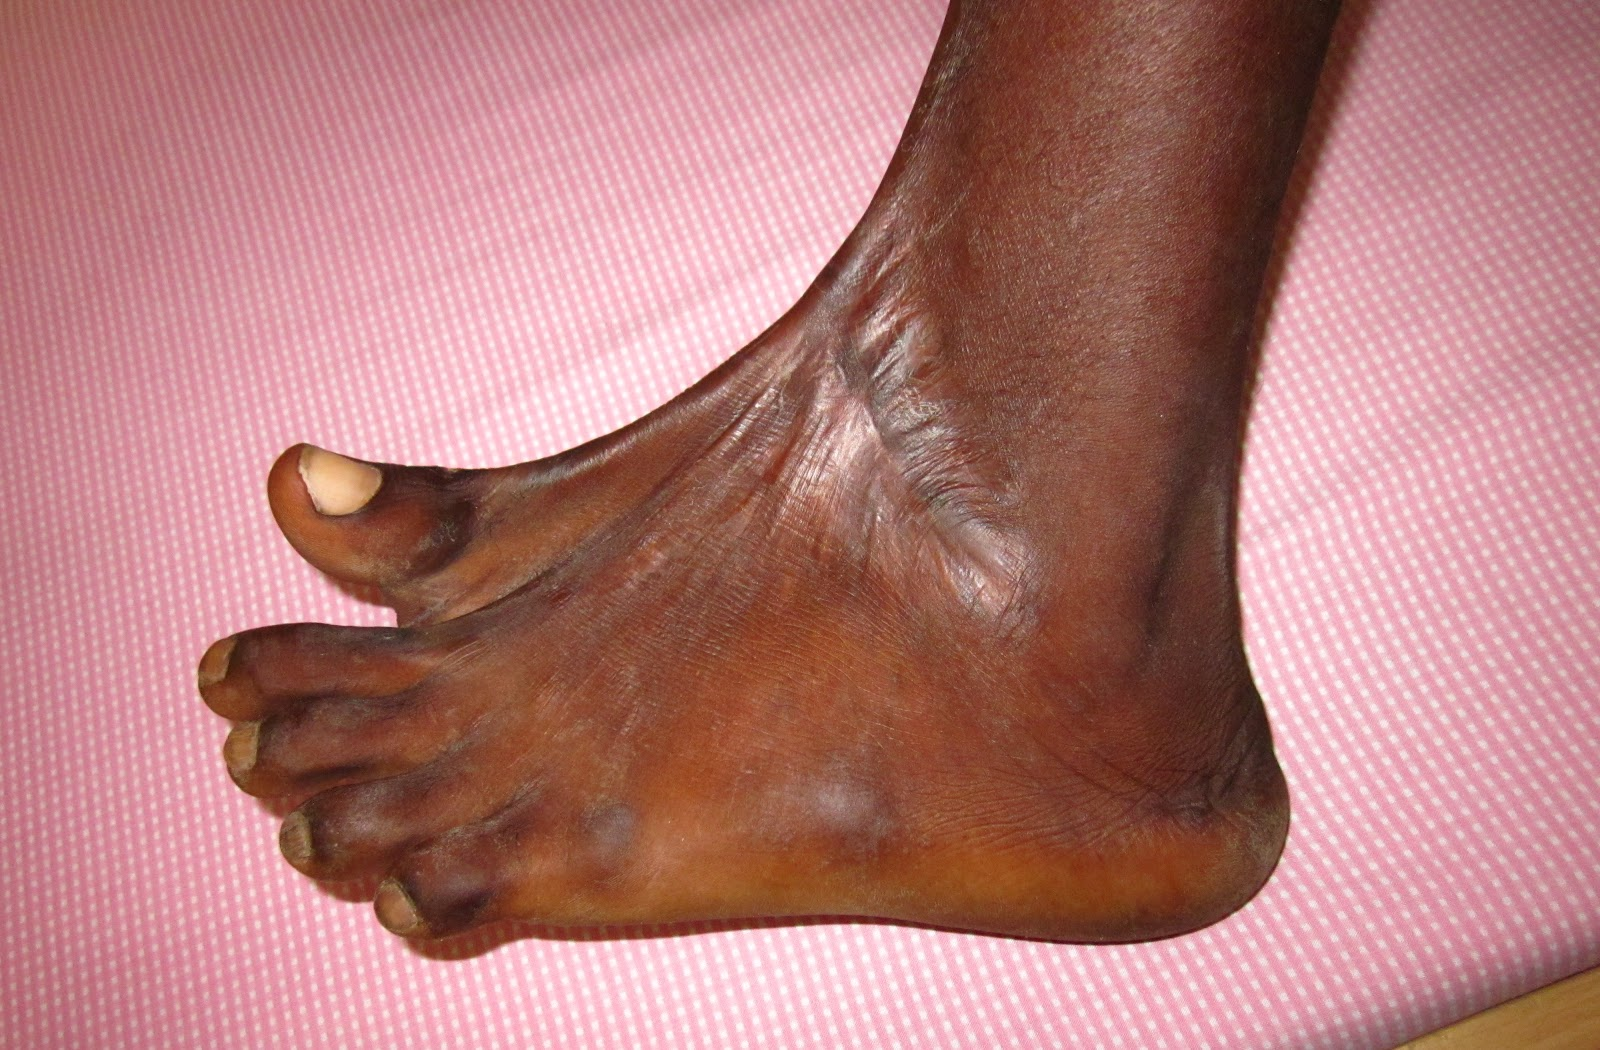 Dorsal Foot Contracture Long Standing Crush Injury Foot Lower